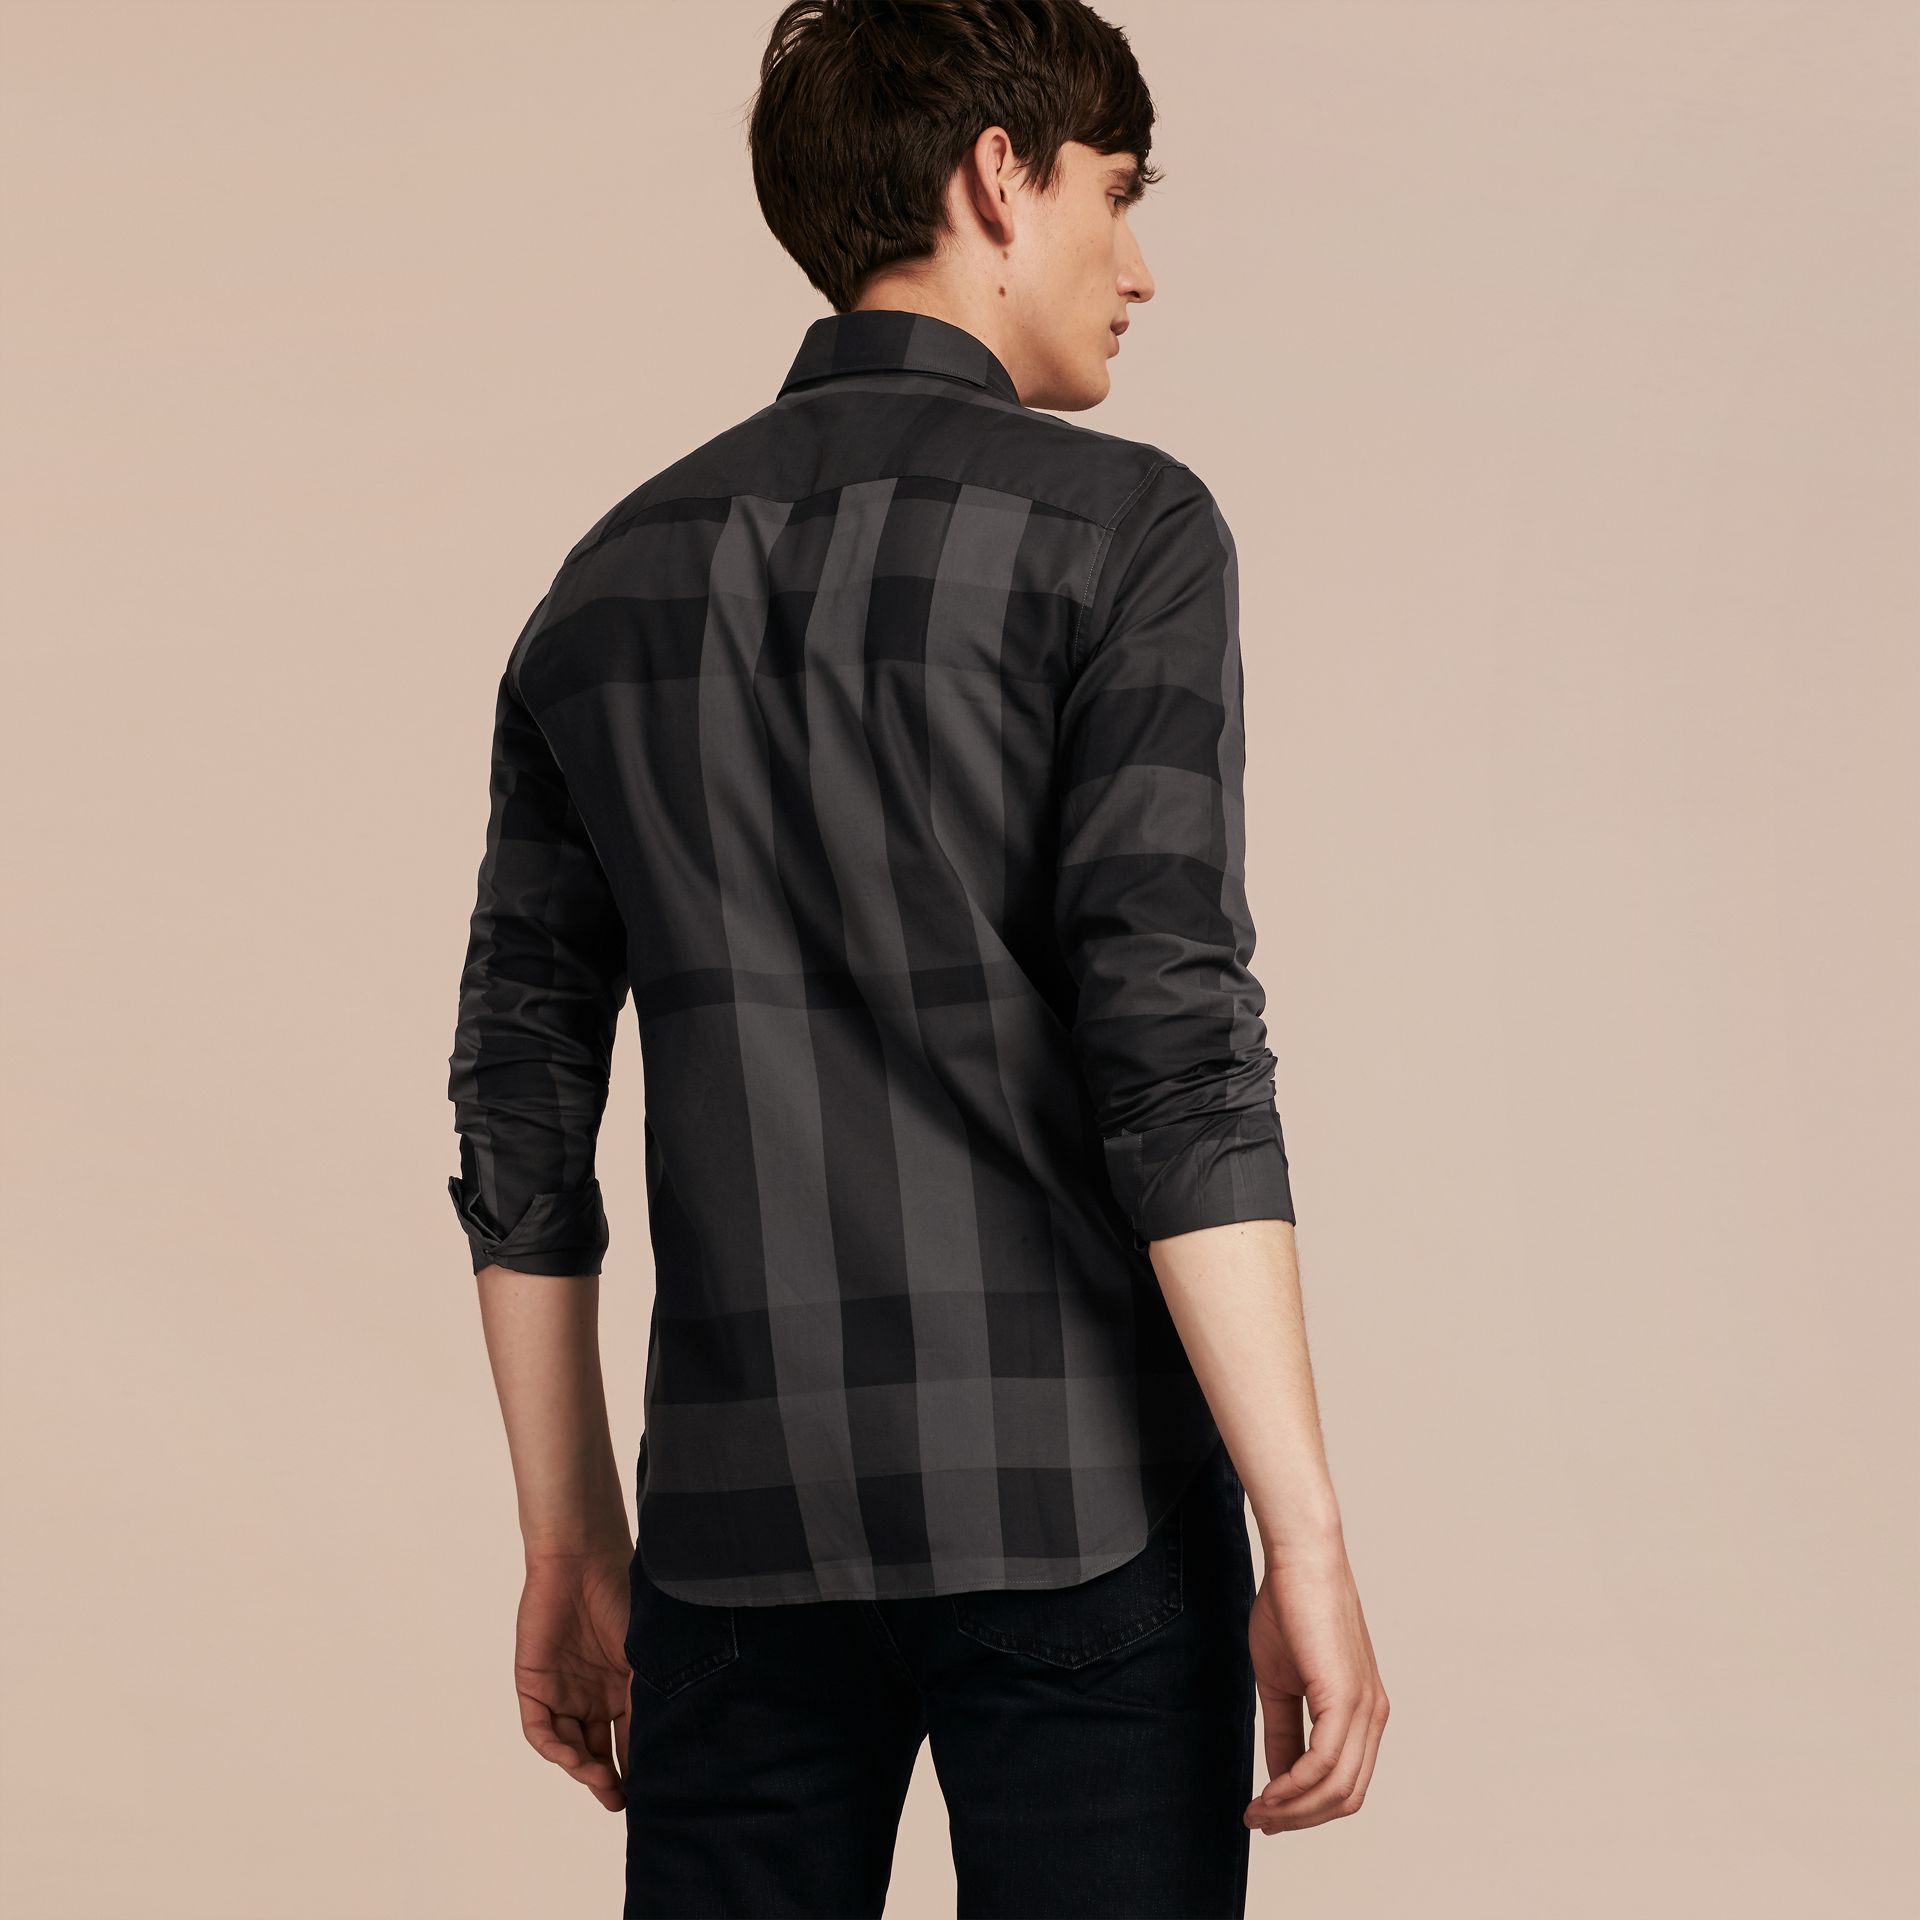 Charcoal Check Cotton Shirt Charcoal - gallery image 3